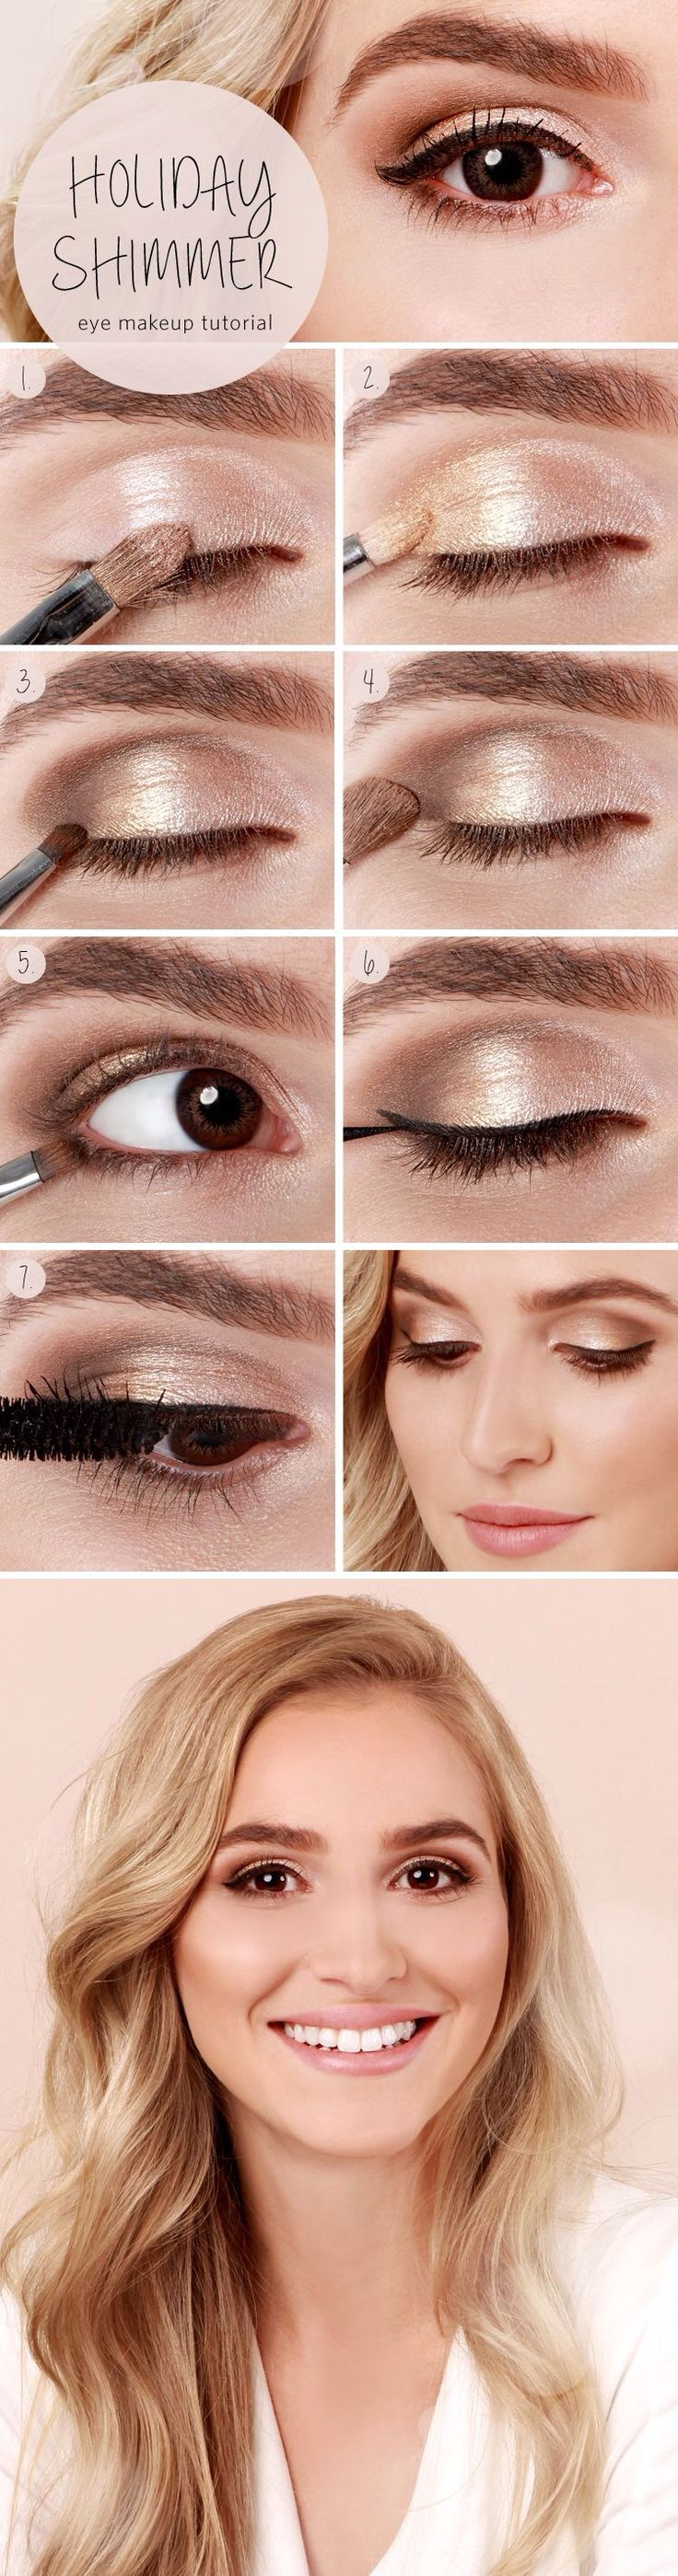 Simple, natural holiday shimmer eye makeup. Perfect for the ordinary day at scho...